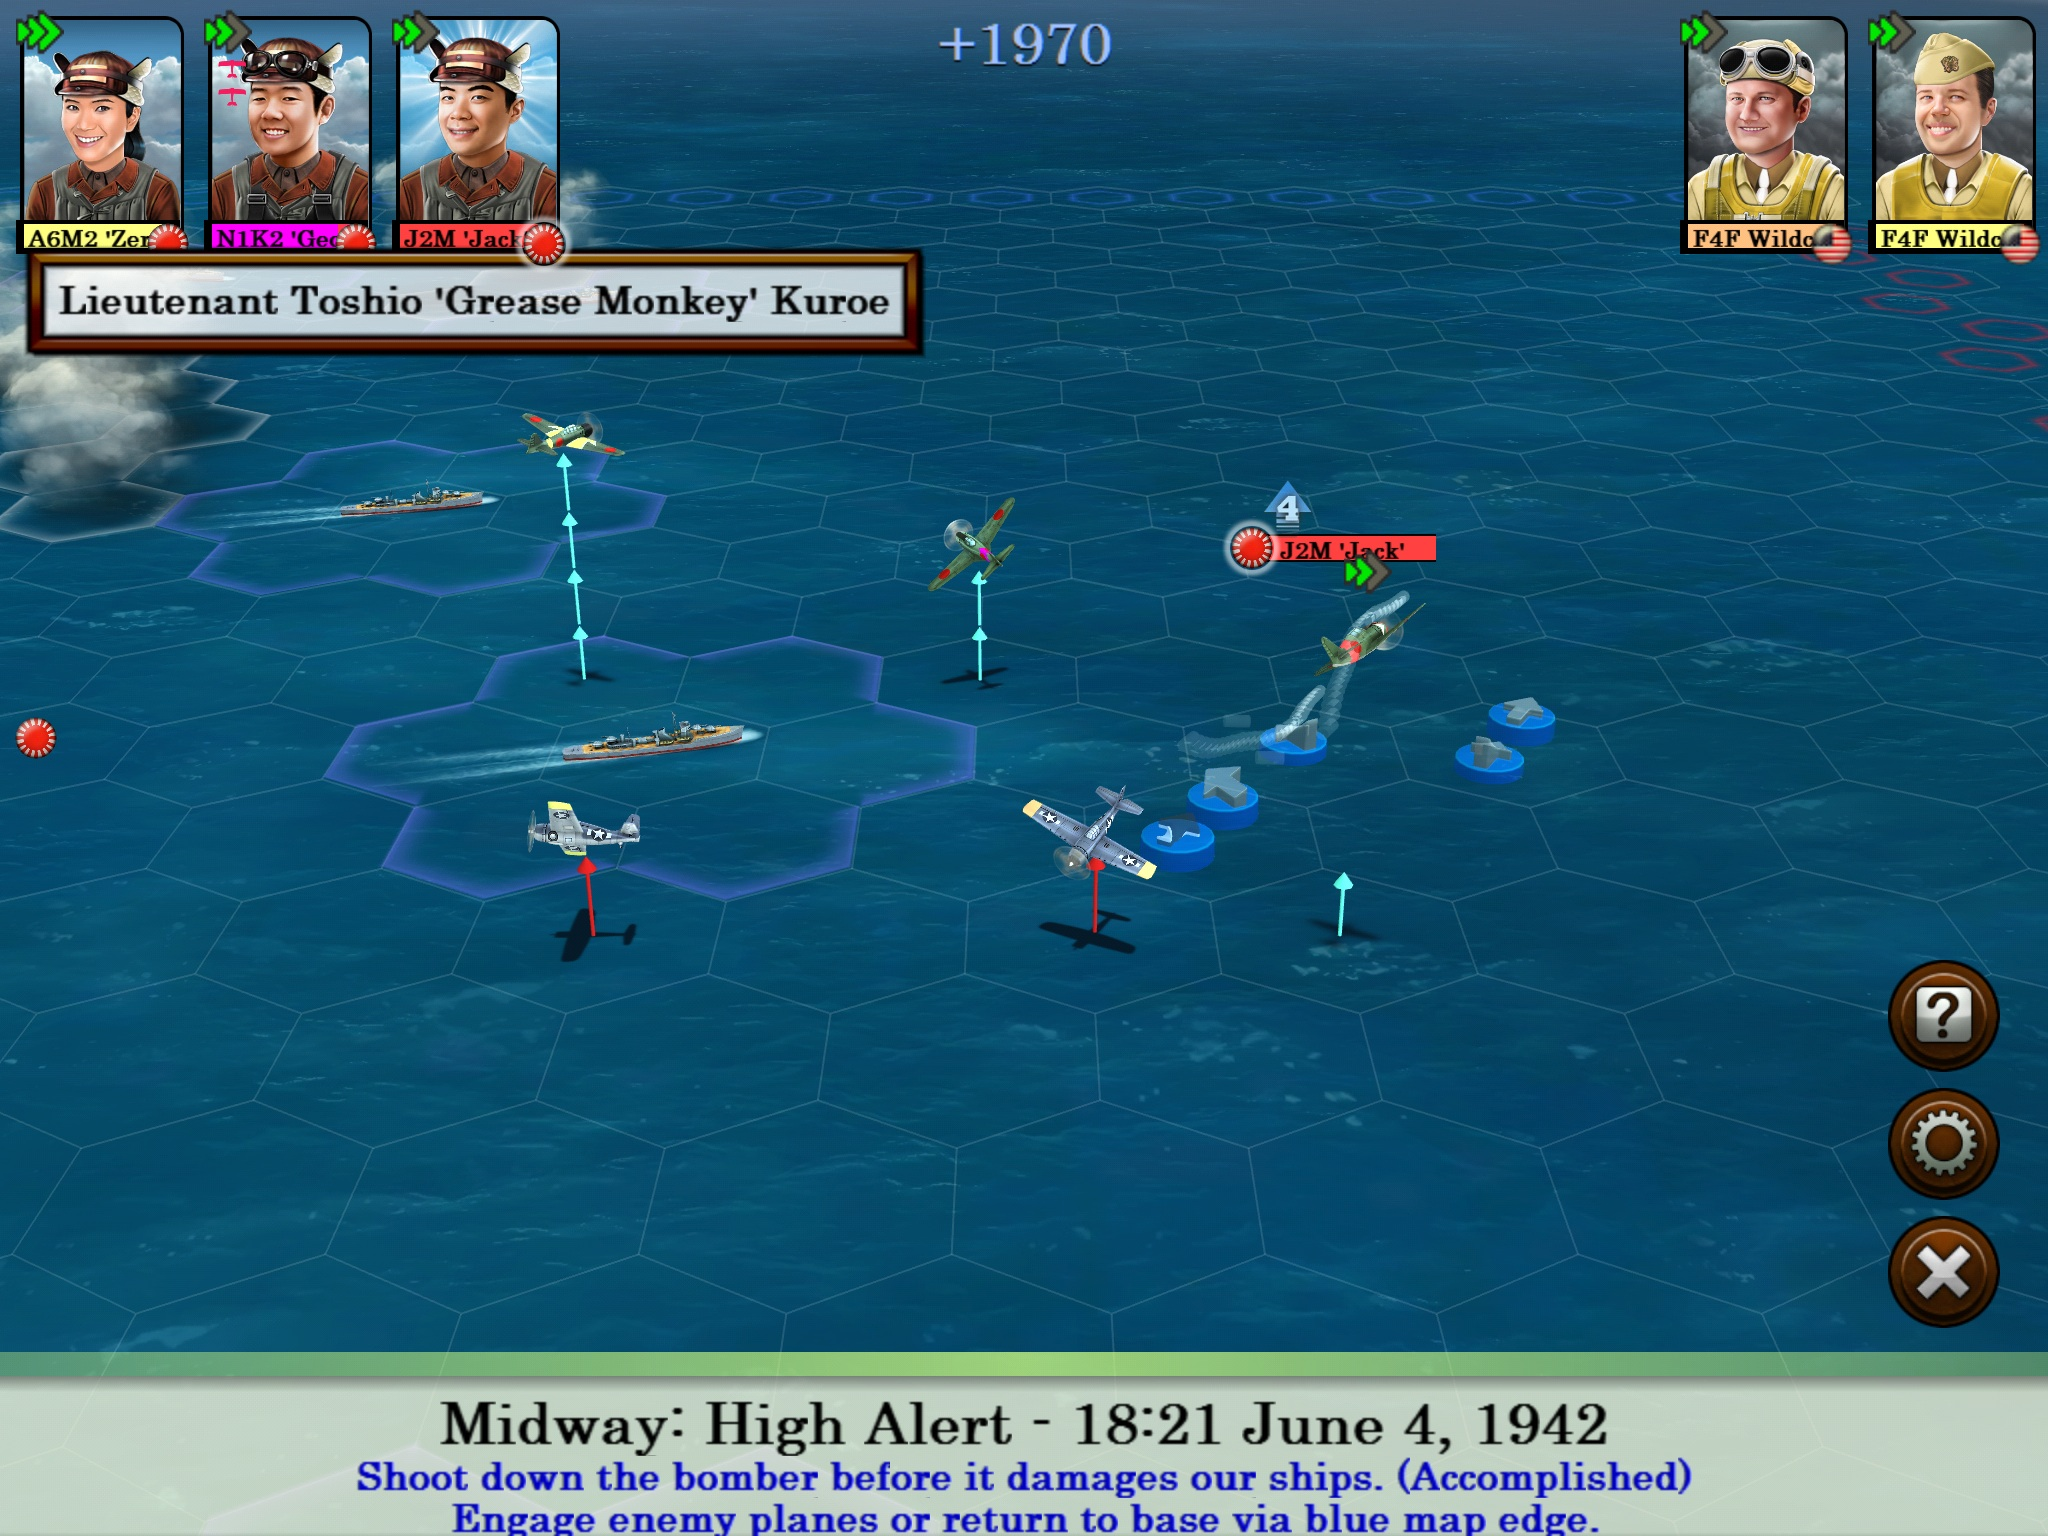 Sid Meier's Ace Patrol: Pacific Skies is on sale now for £1.49 / $1.99